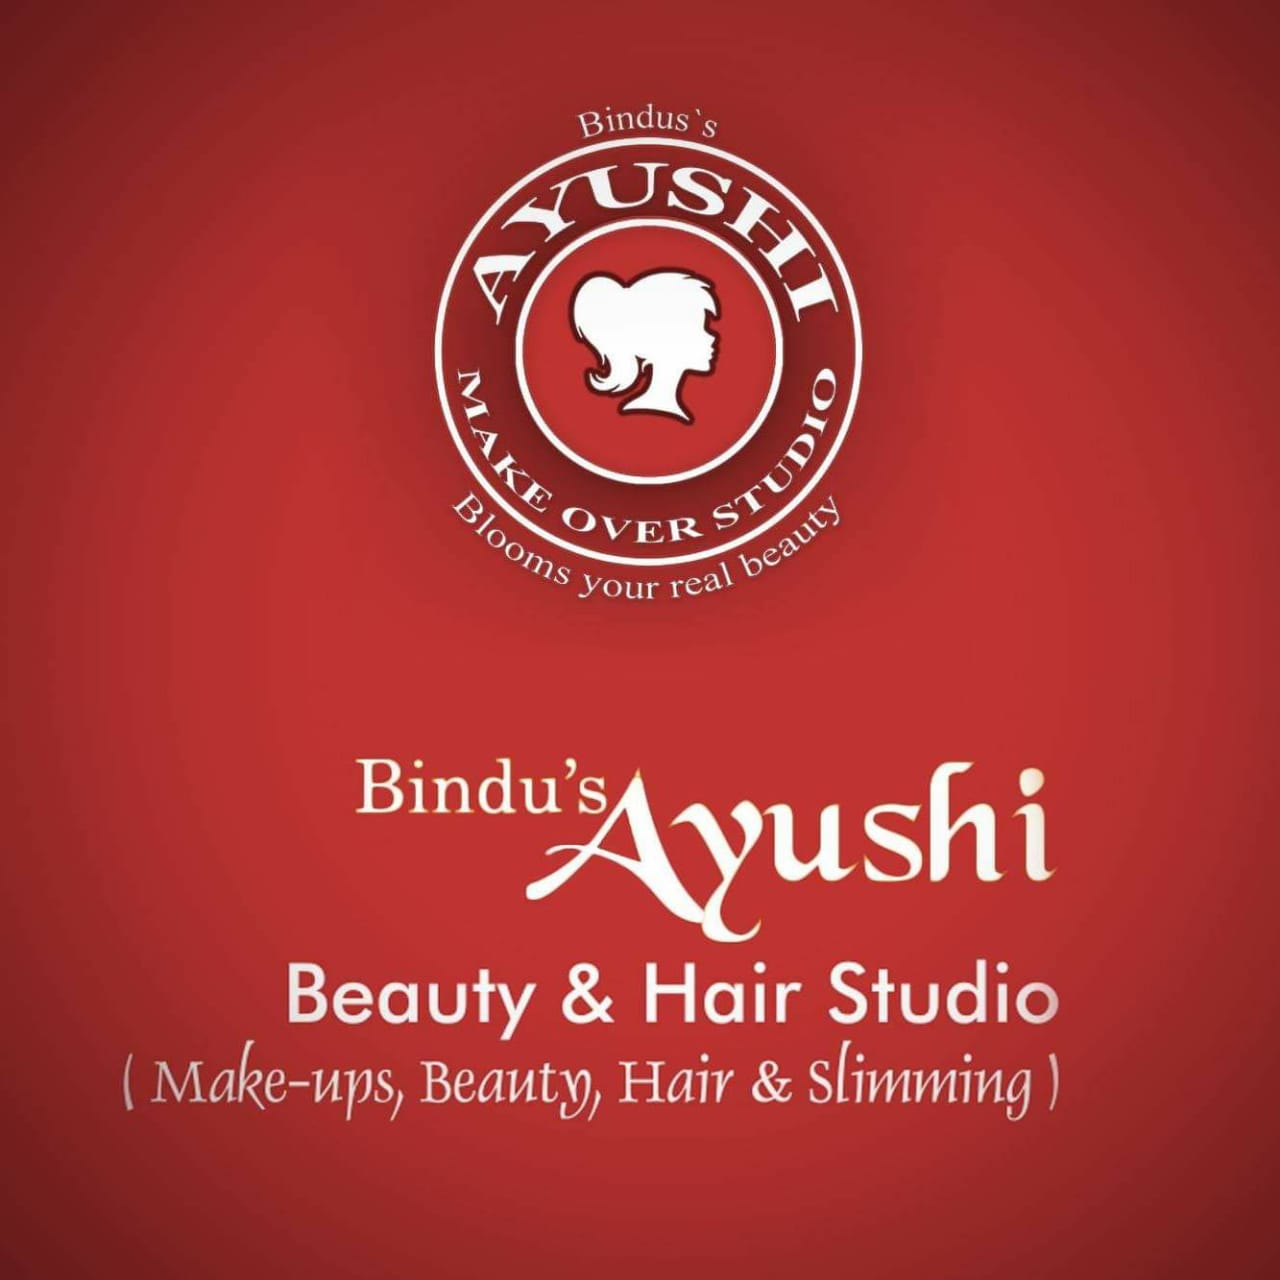 Ayushi Beauty & Hair Studio